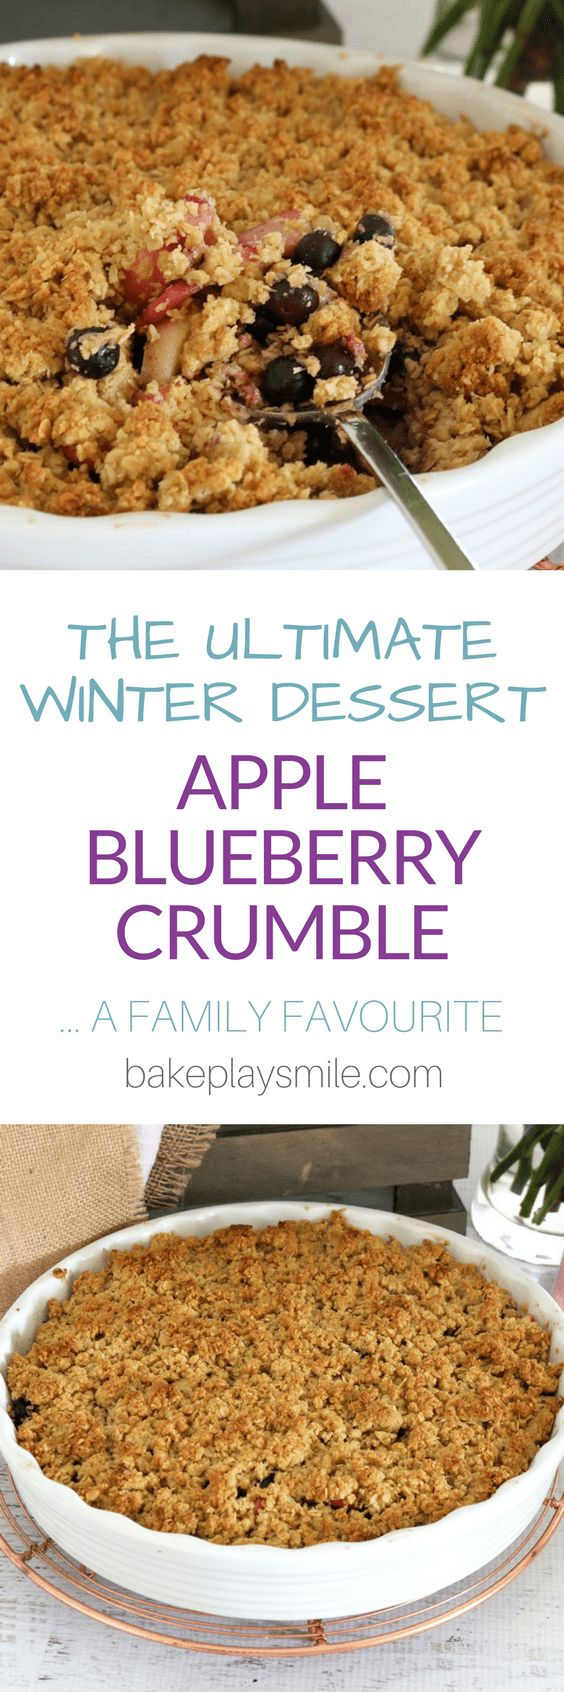 THE ULTIMATE APPLE BLUEBERRY CRUMBLE!!!! This really is the best ever apple and blueberry crumble! It's so simple to make, takes only 10 minutes to prepare and is a sure winner with the whole family! Serve with ice-cream, custard or cream for a truly del